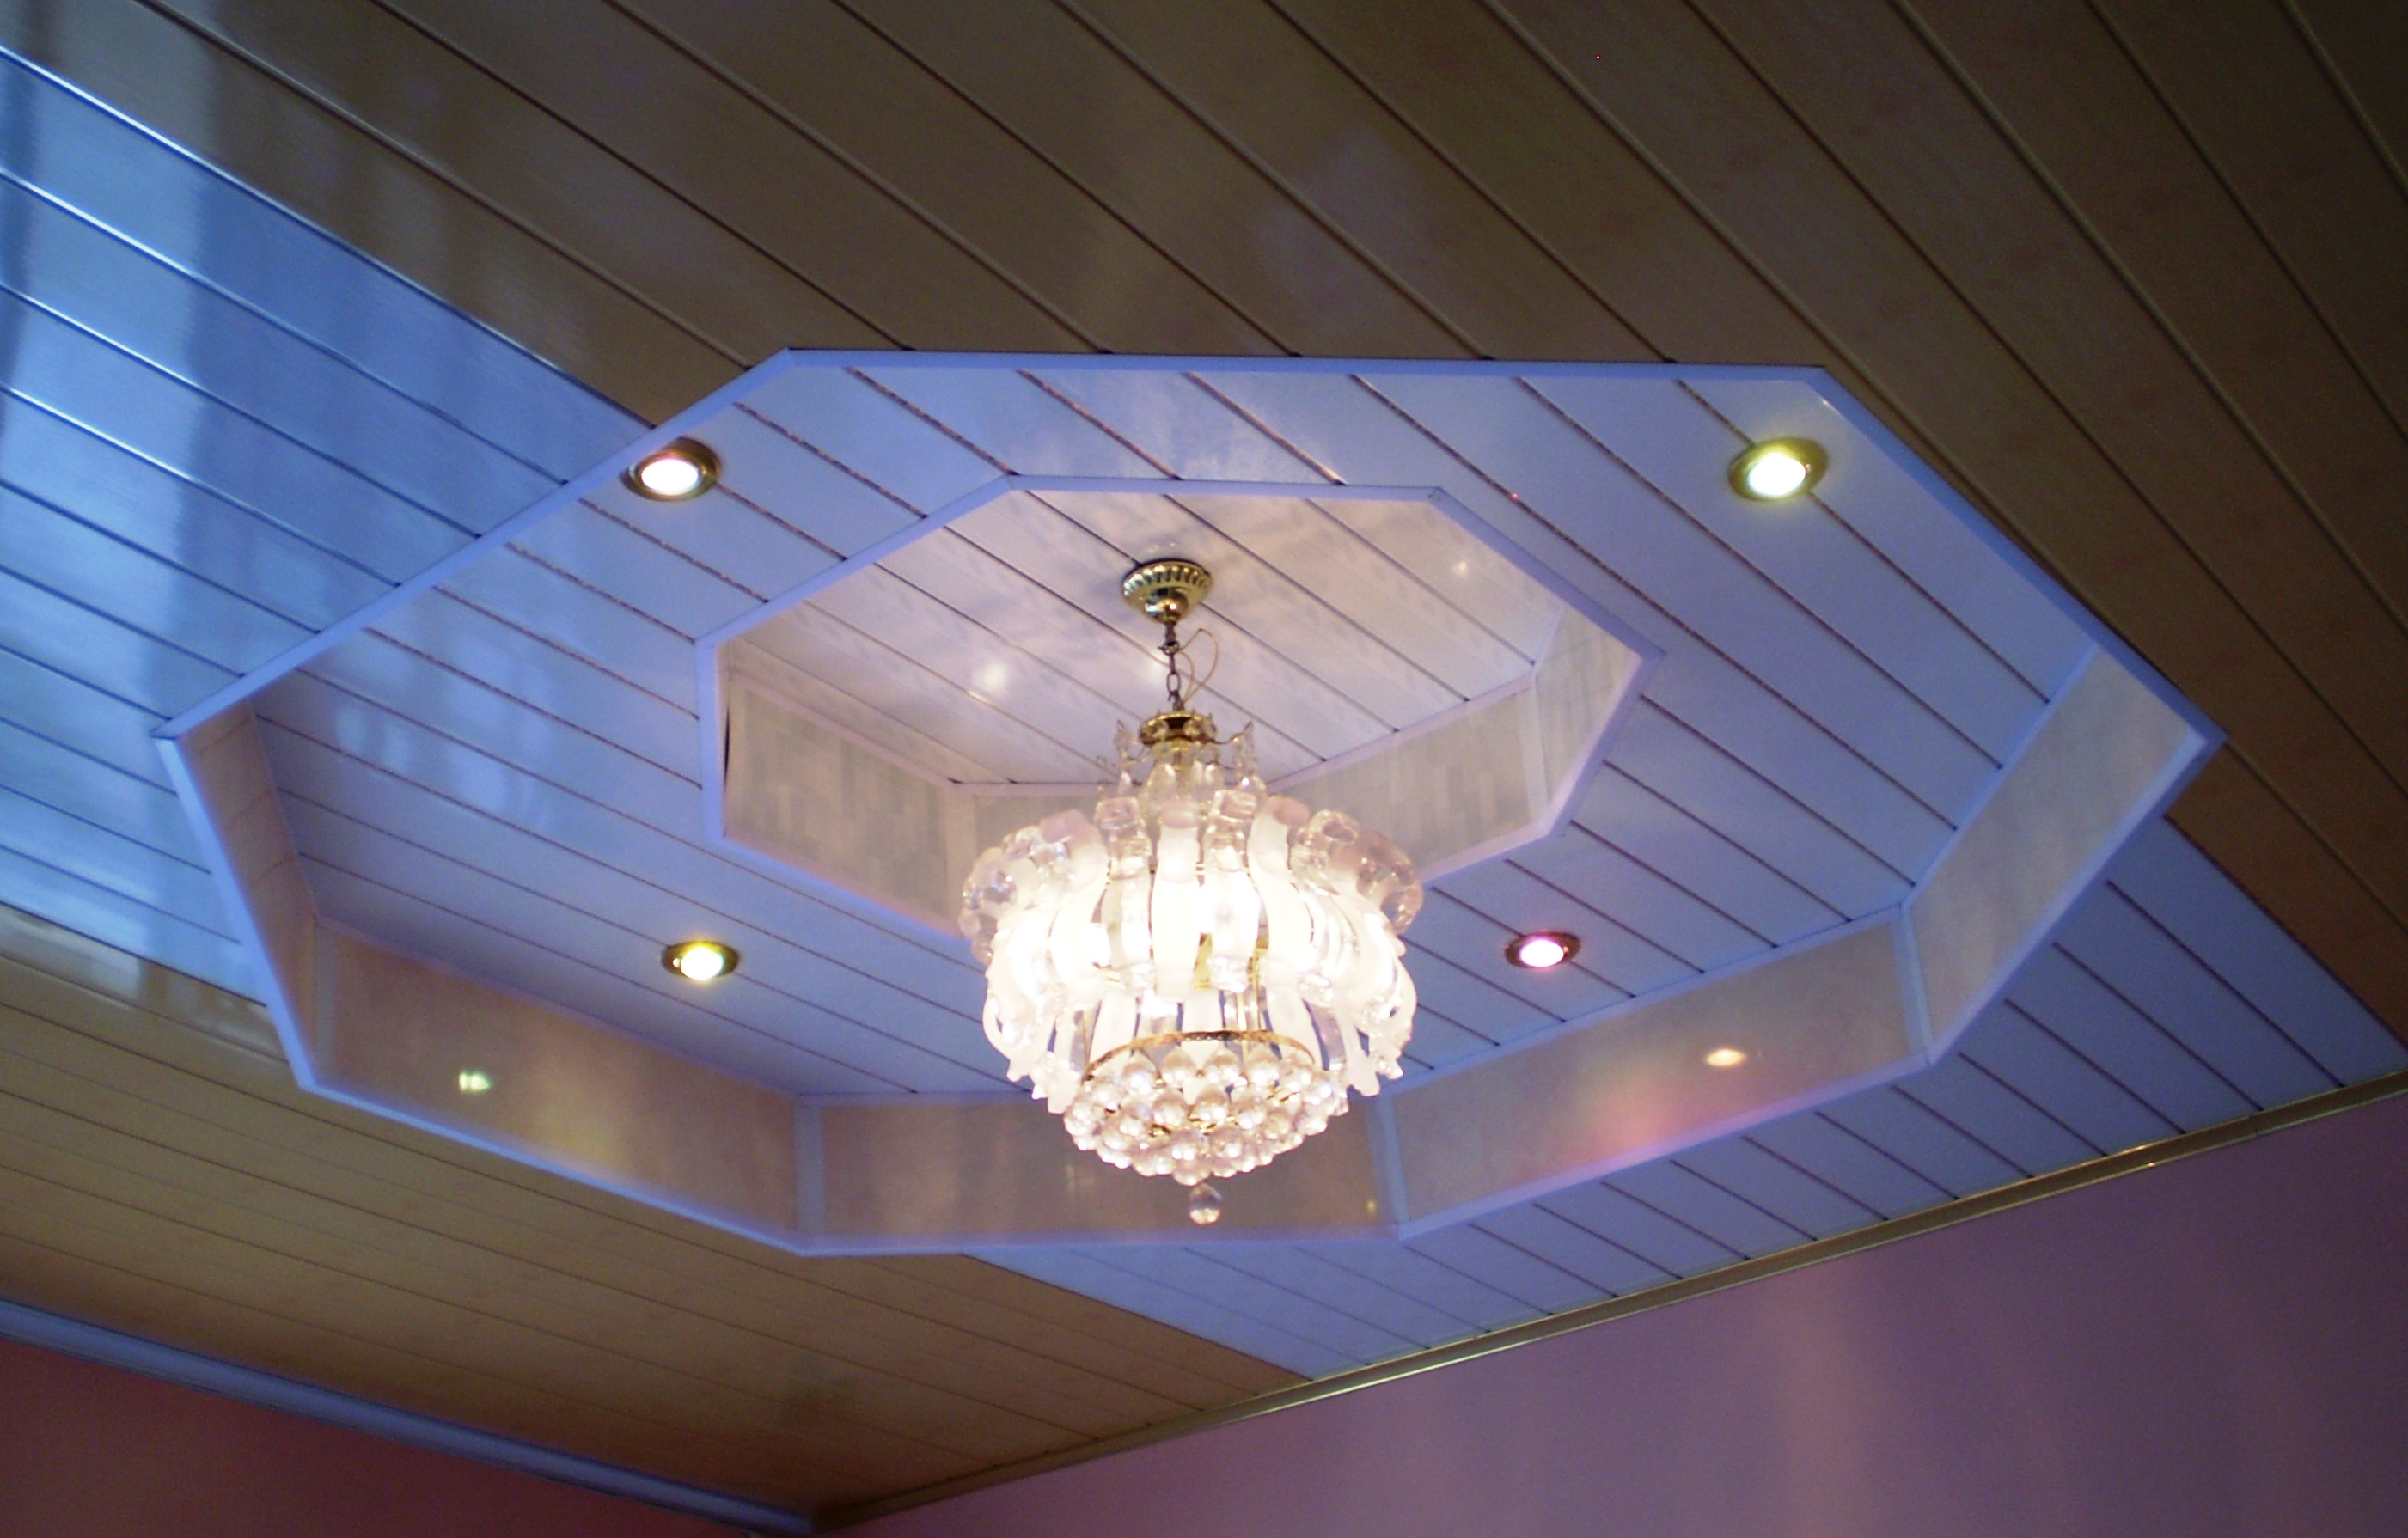 Pvc Ceiling Designs Pionare Enterprises Ltd